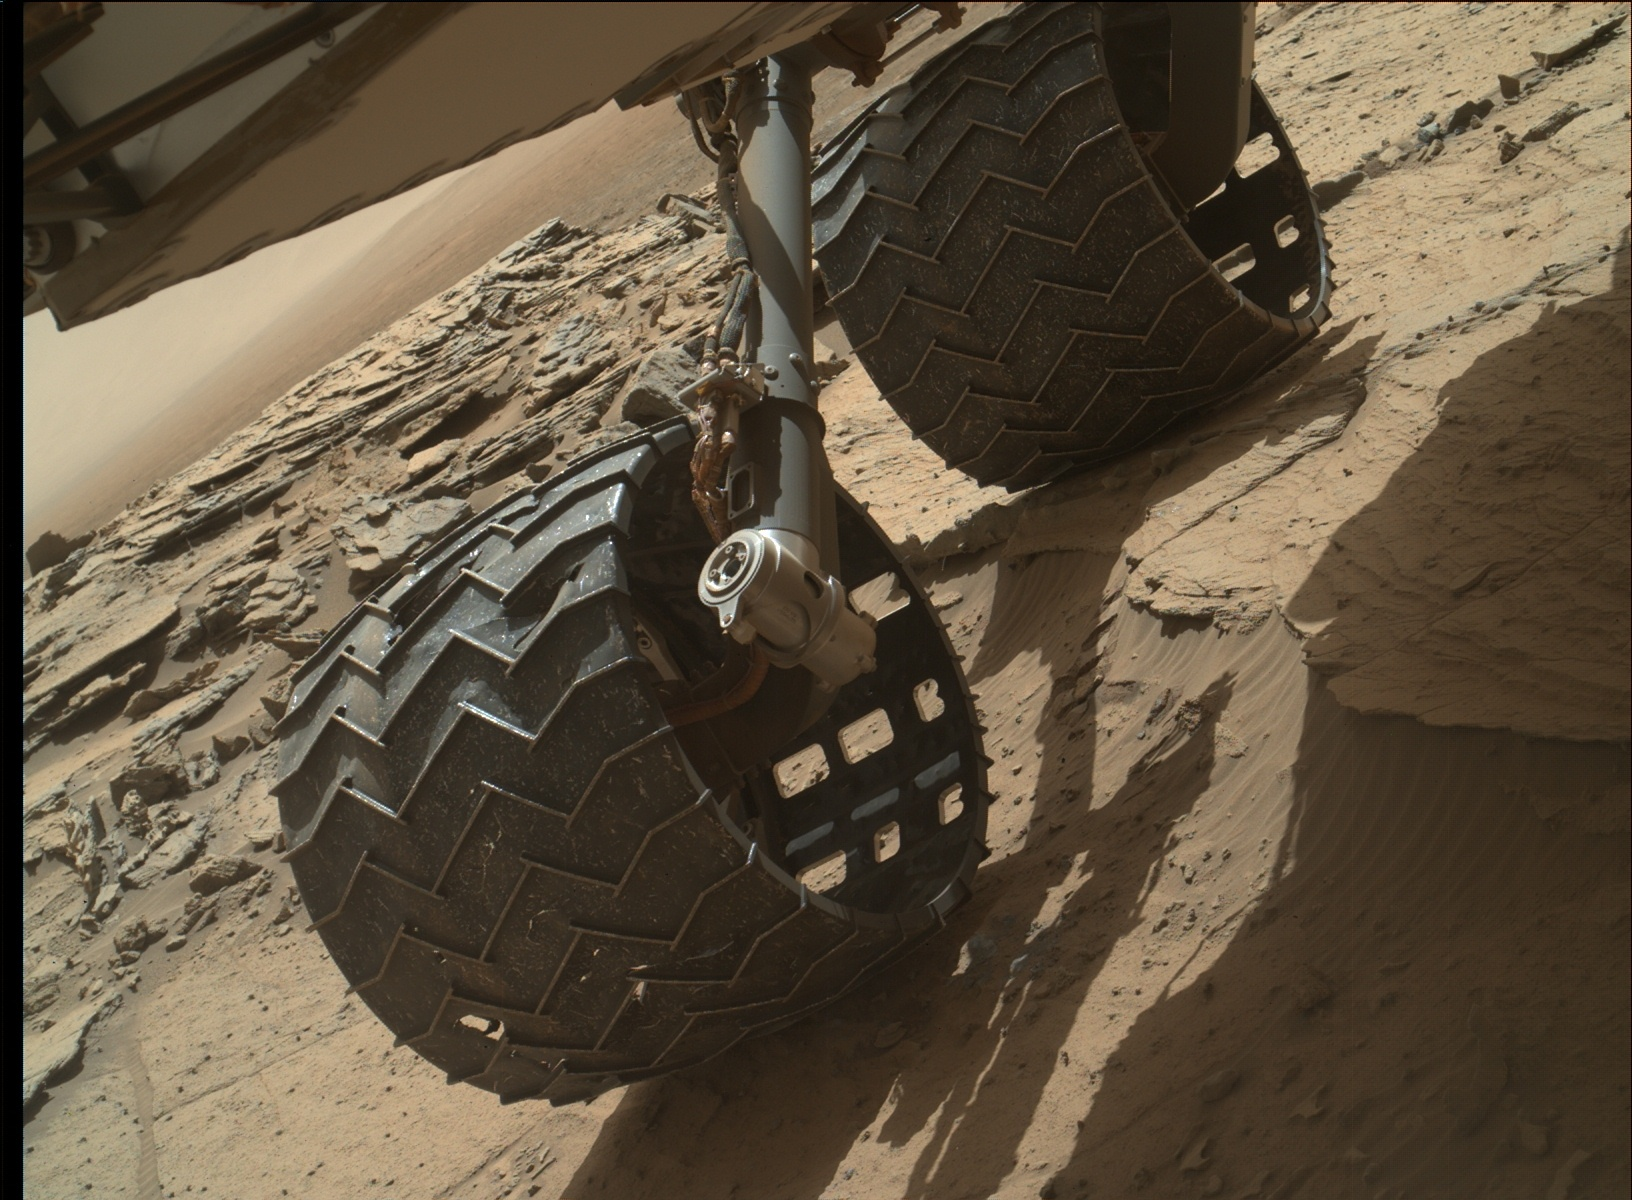 Nasa's Mars rover Curiosity acquired this image using its Mars Hand Lens Imager (MAHLI) on Sol 1127